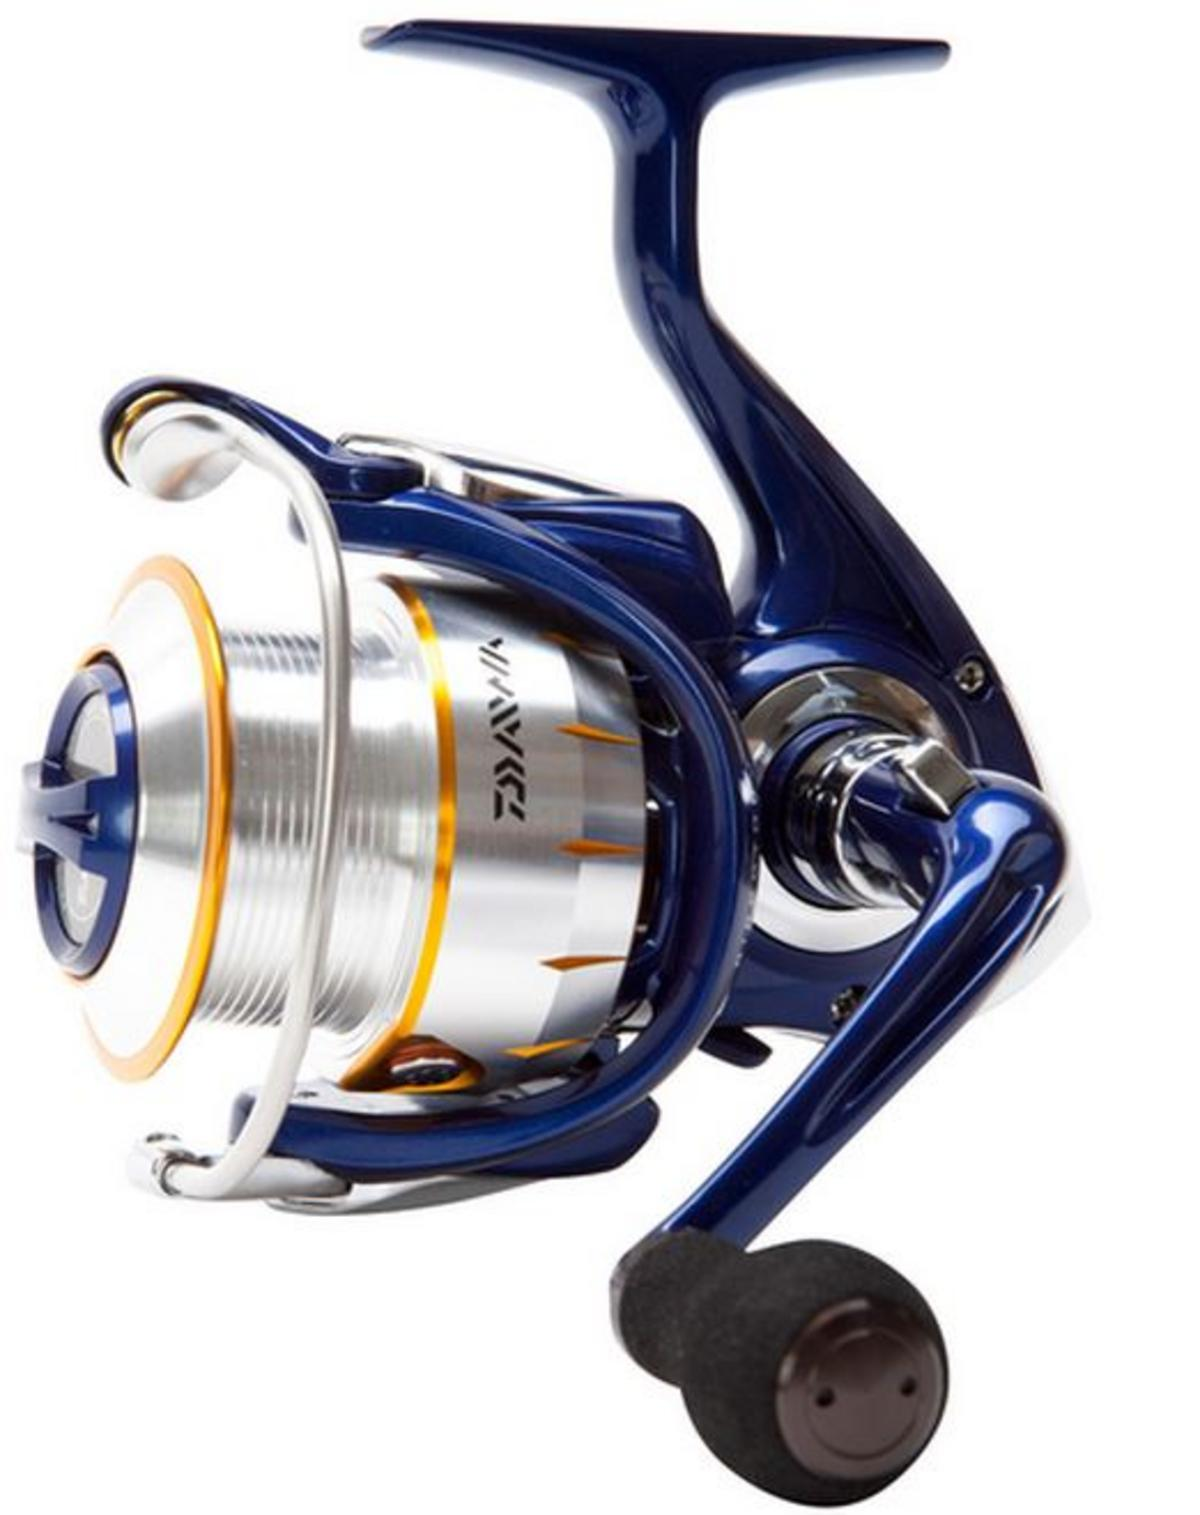 NEW TEAM DAIWA TDR 3012 MATCH FISHING REEL MODEL NO. TDR3012A